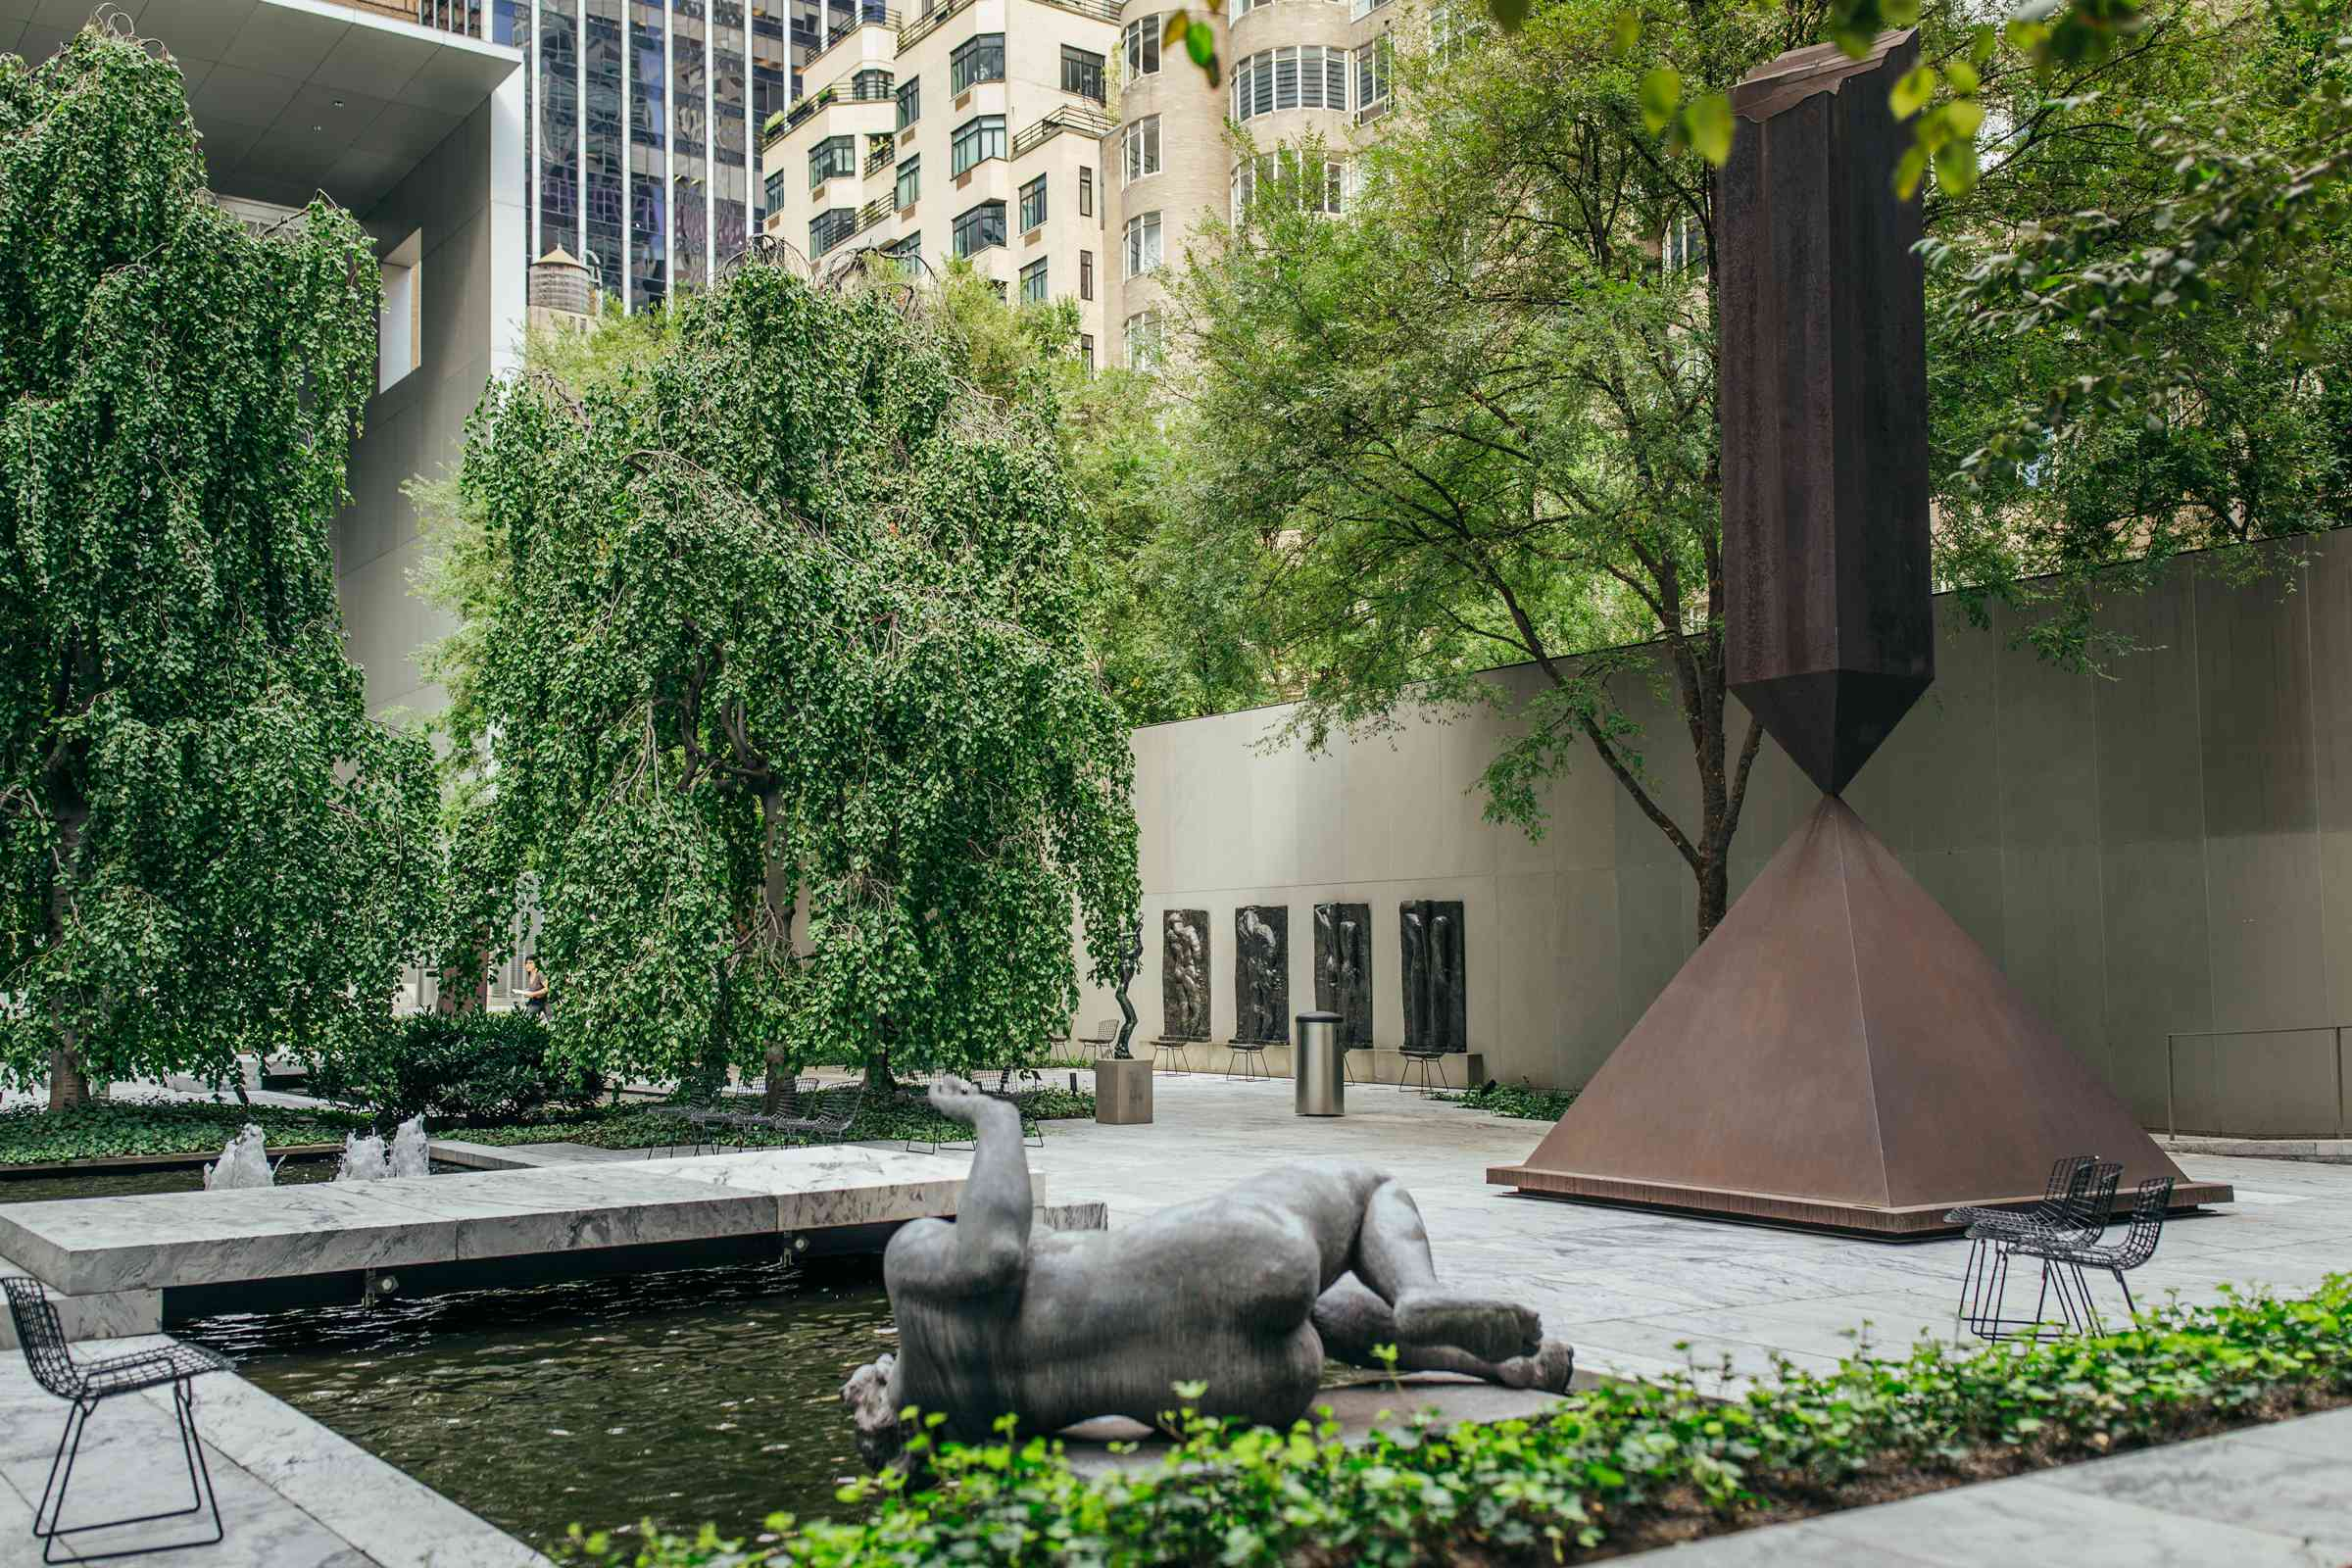 Sculpture Garden at the MoMA in NYC